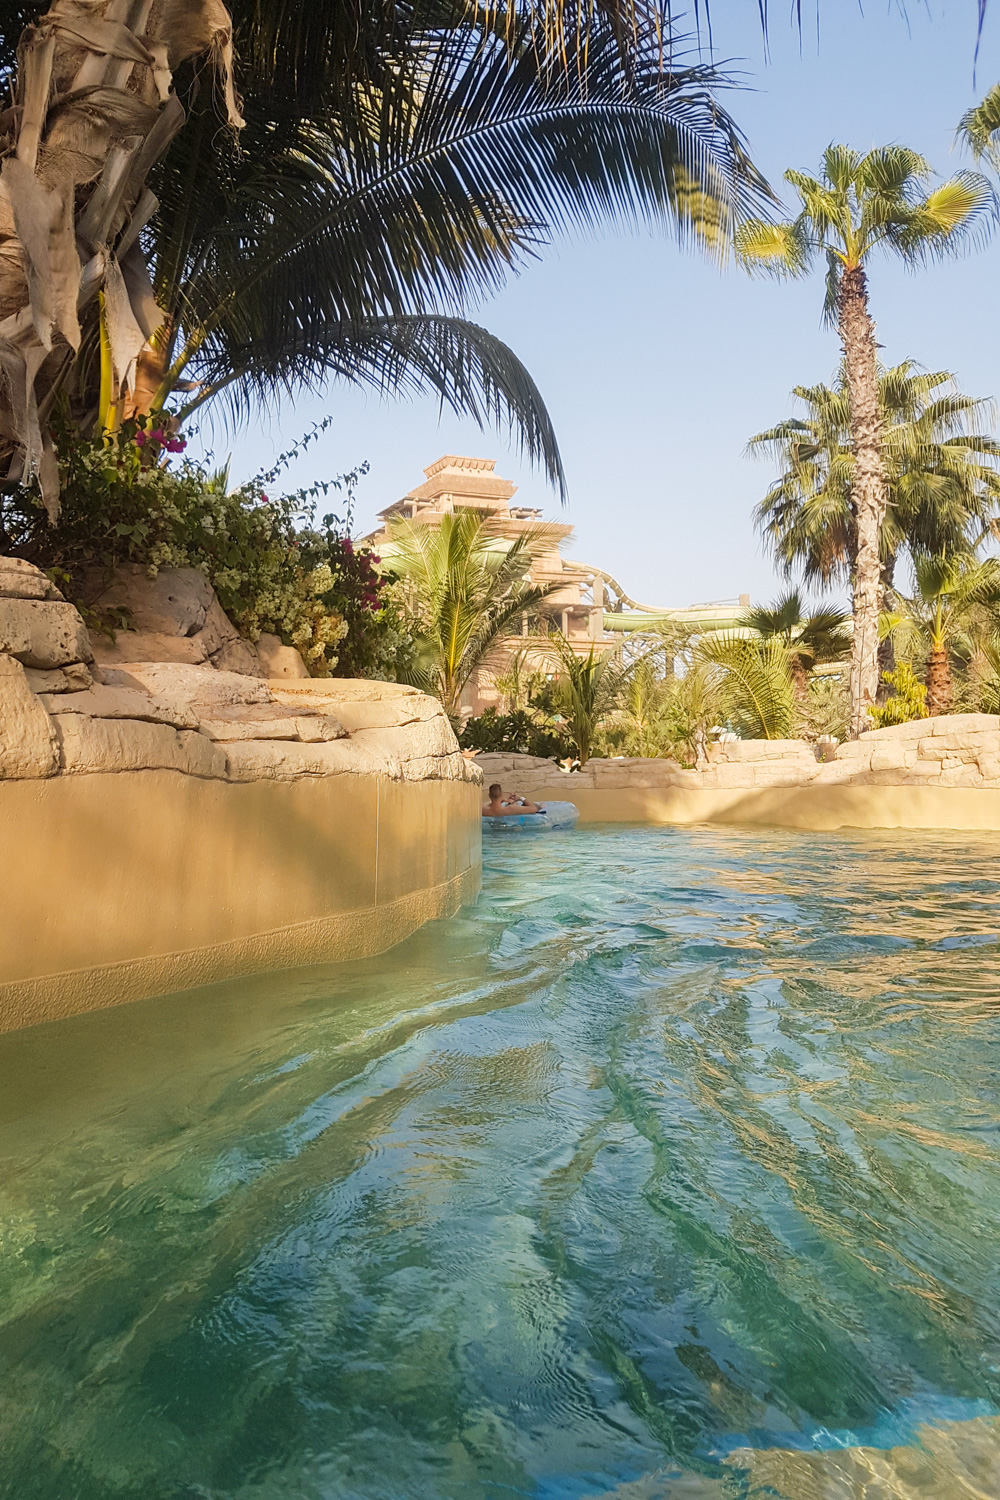 Lazy River at Aquaventure Waterpark, Atlantis the Palm, Dubai